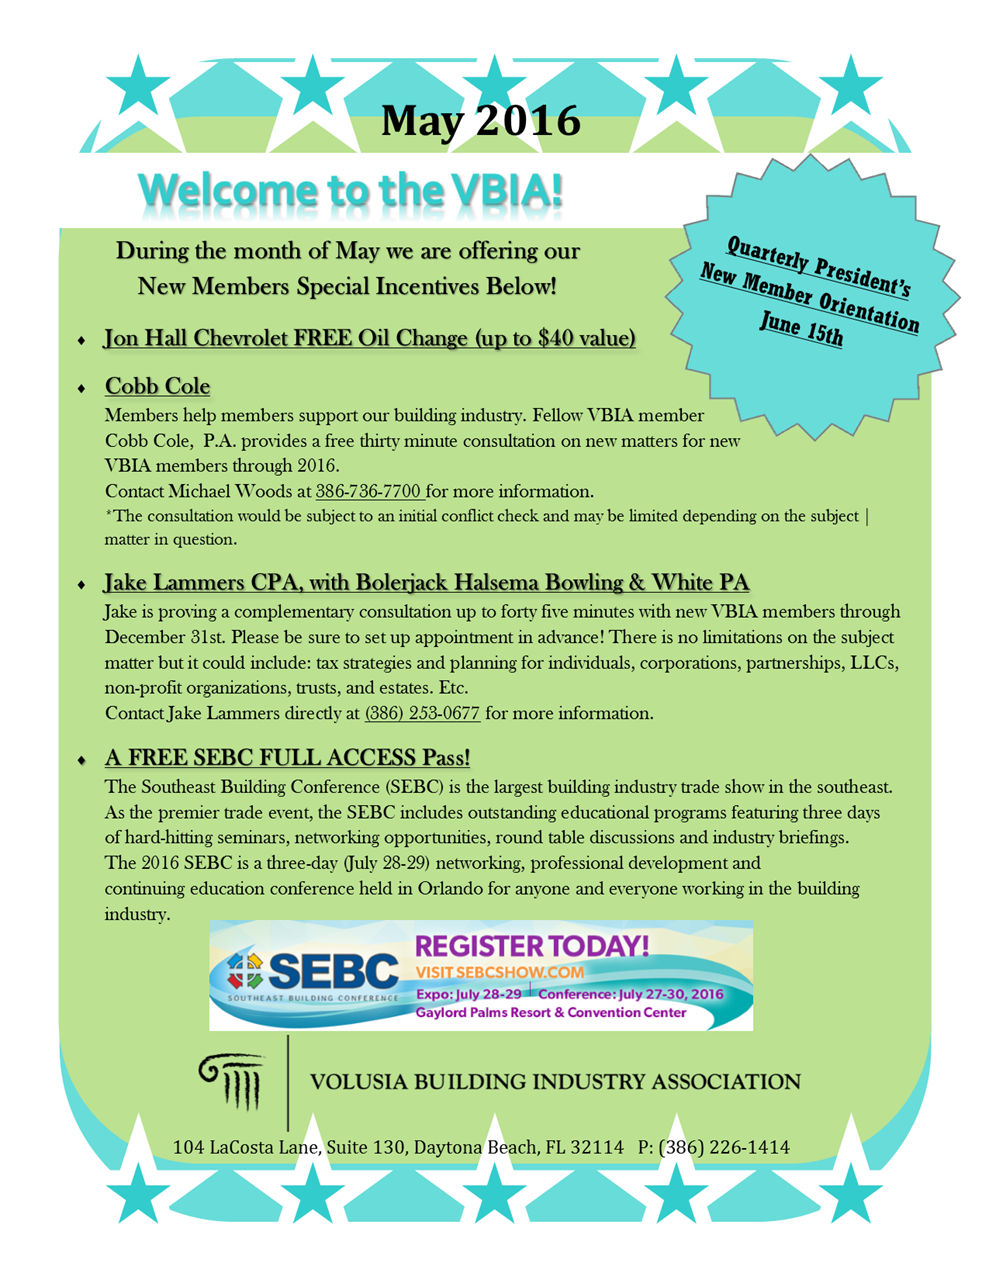 Volusia Building Industry Association - Newsletter May 2016